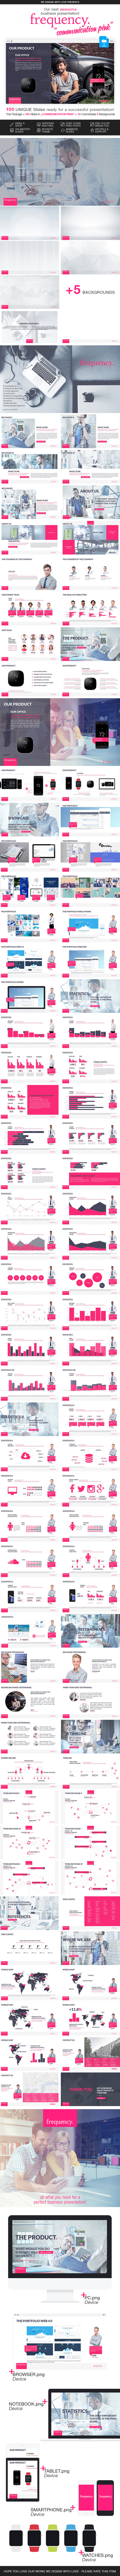 frequency // 100 Keynote Slides PINK - Business Keynote Templates